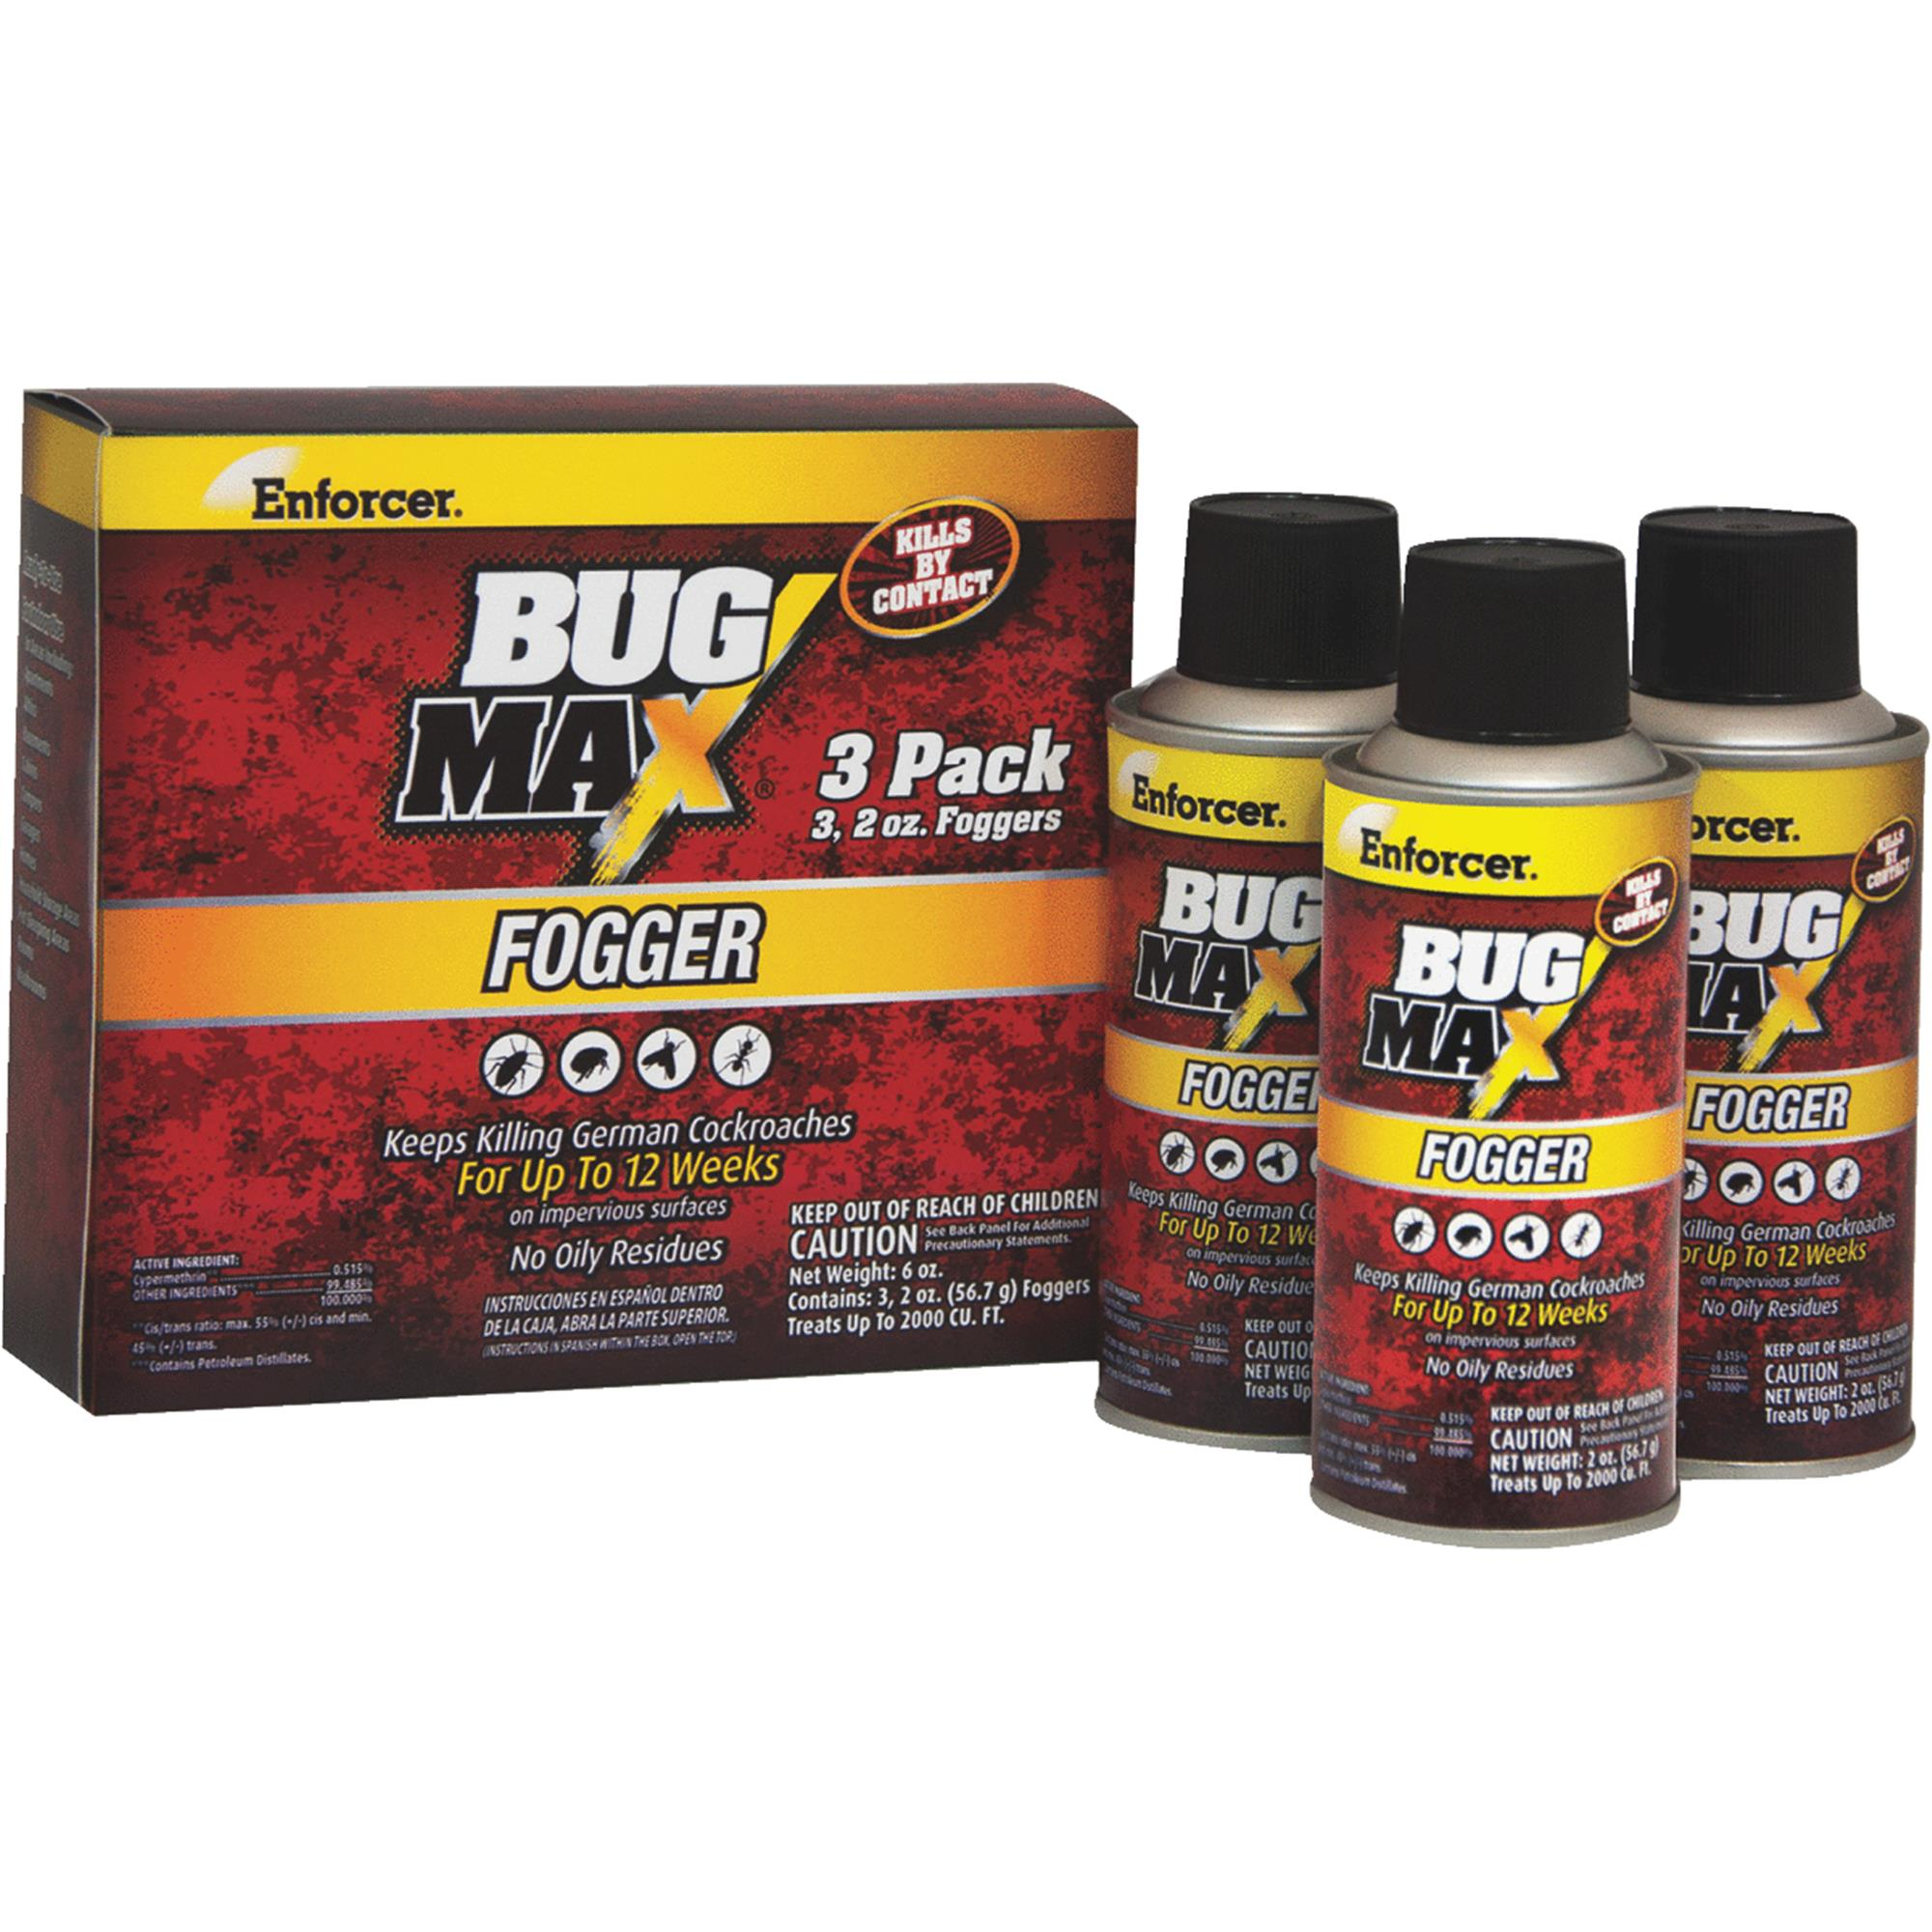 Enforcer Bug Max Indoor Insect Fogger